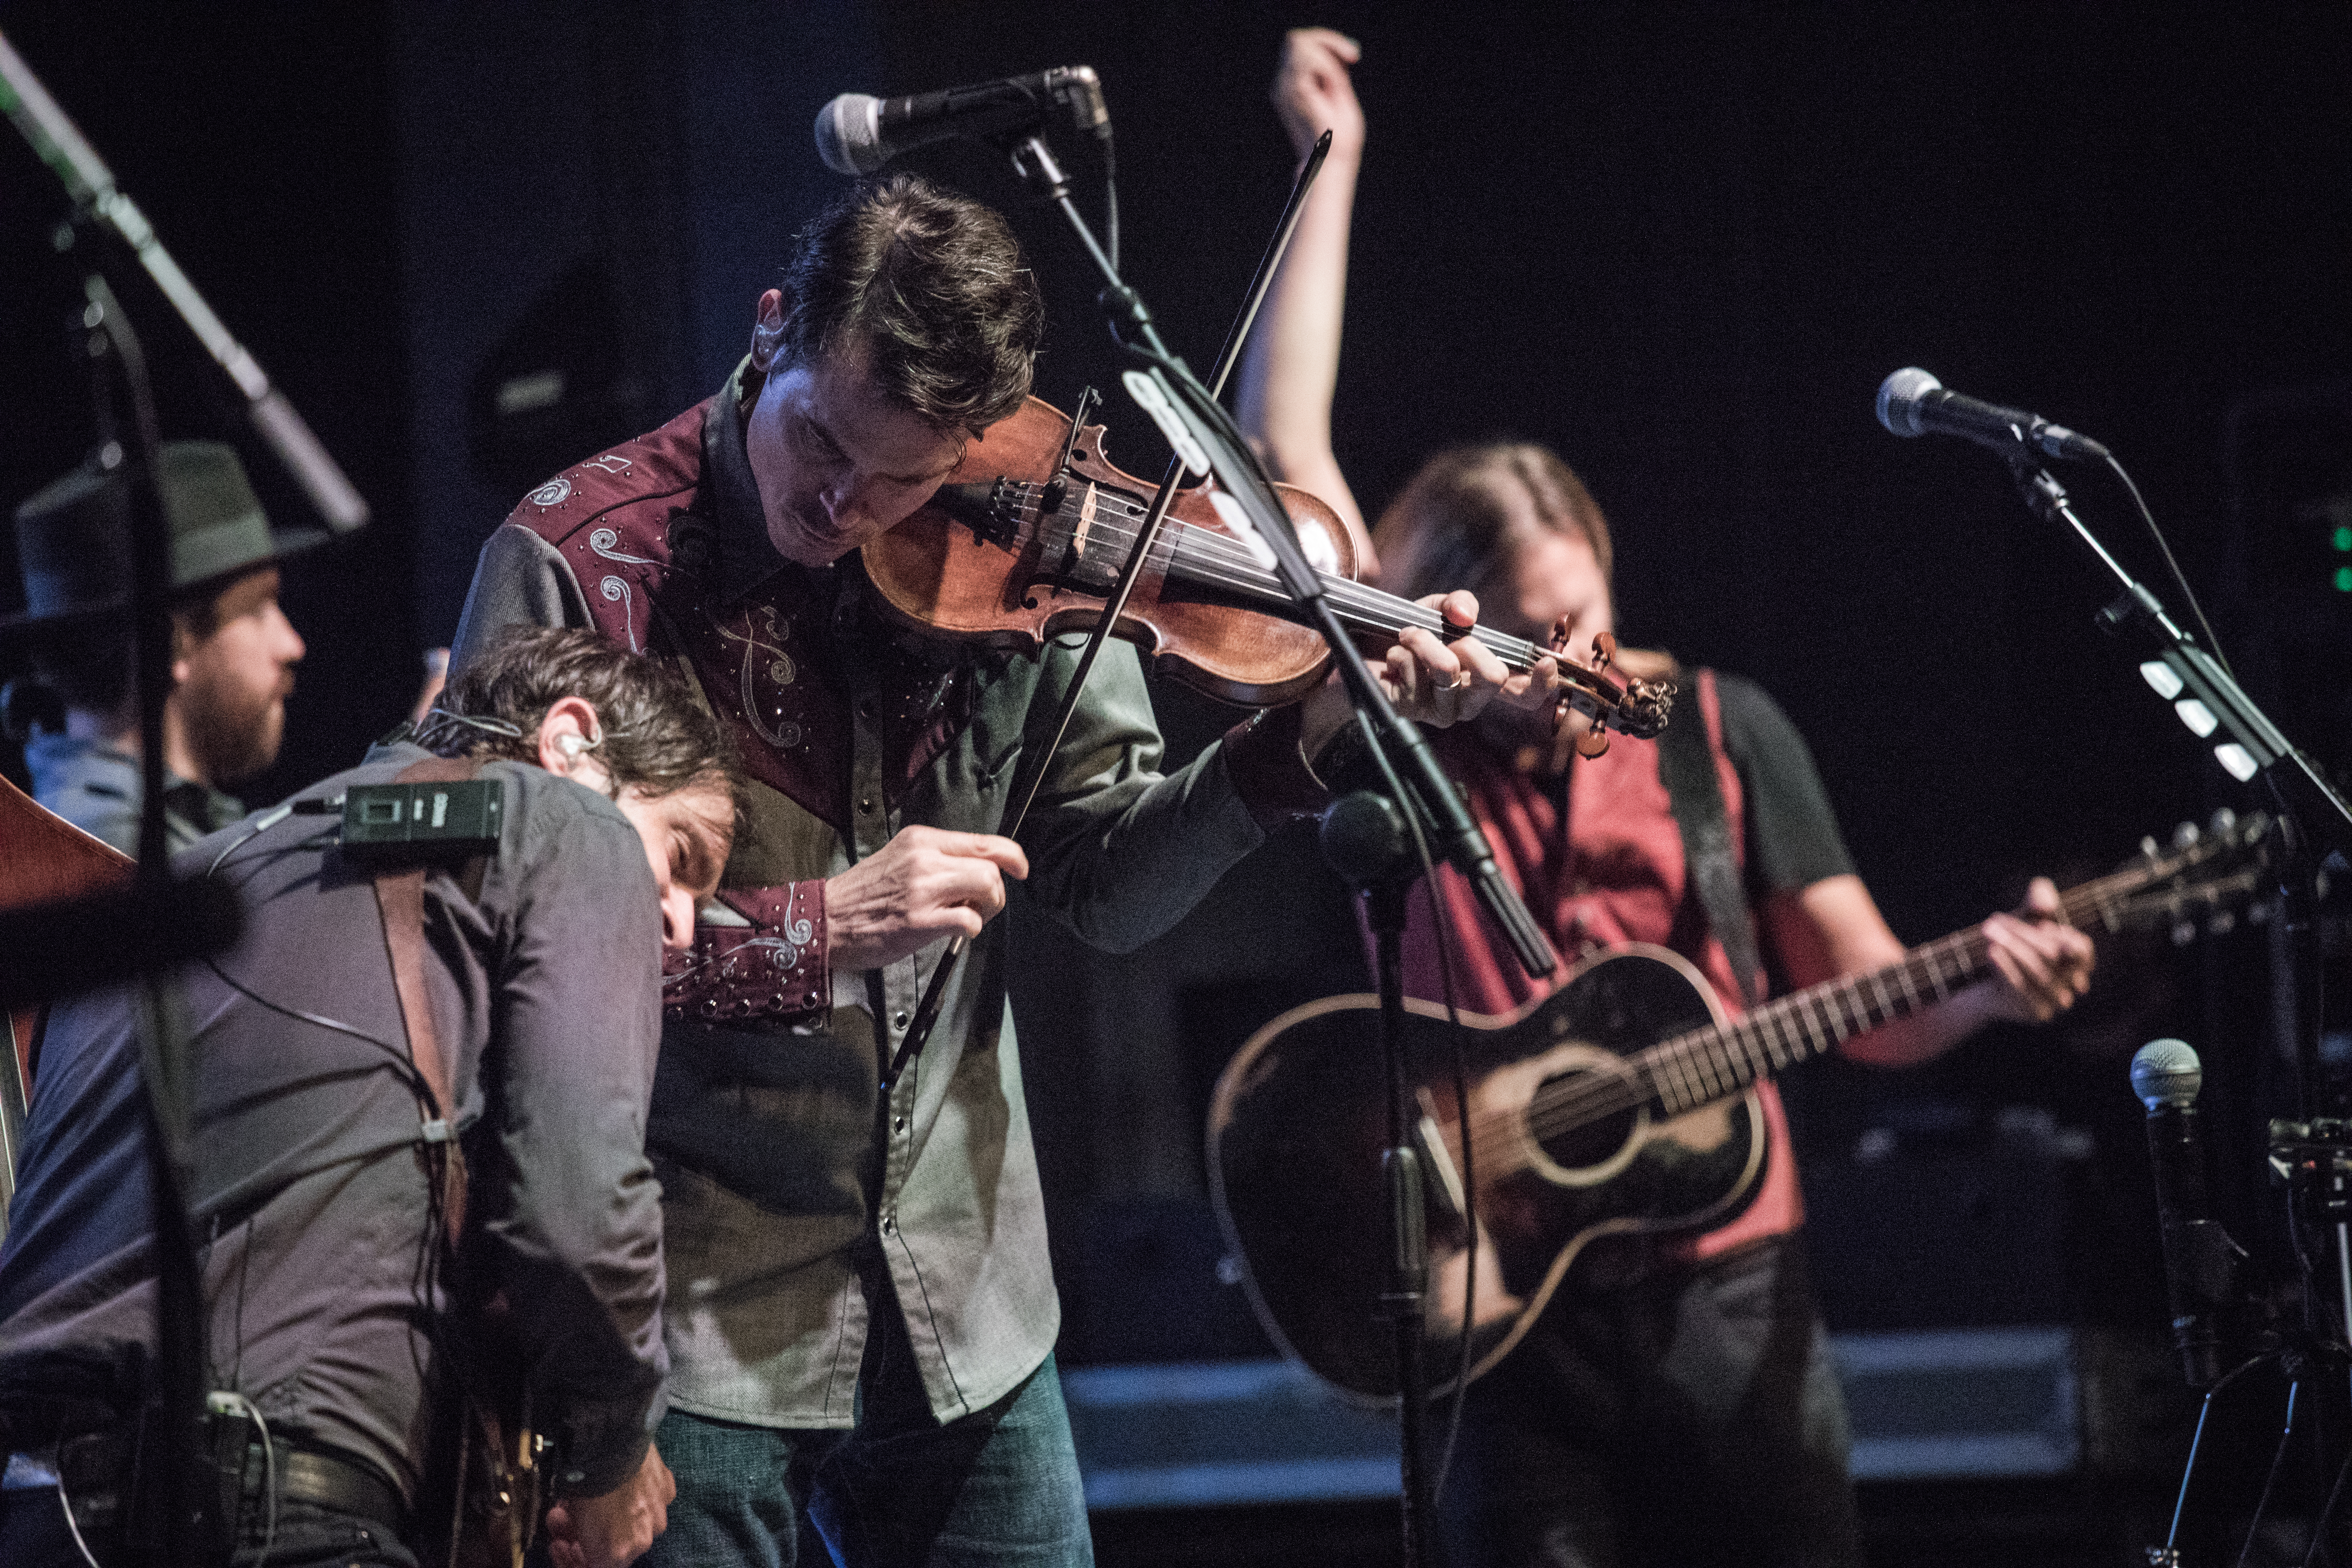 live-review-an-evening-with-old-crow-medicine show savage thrills